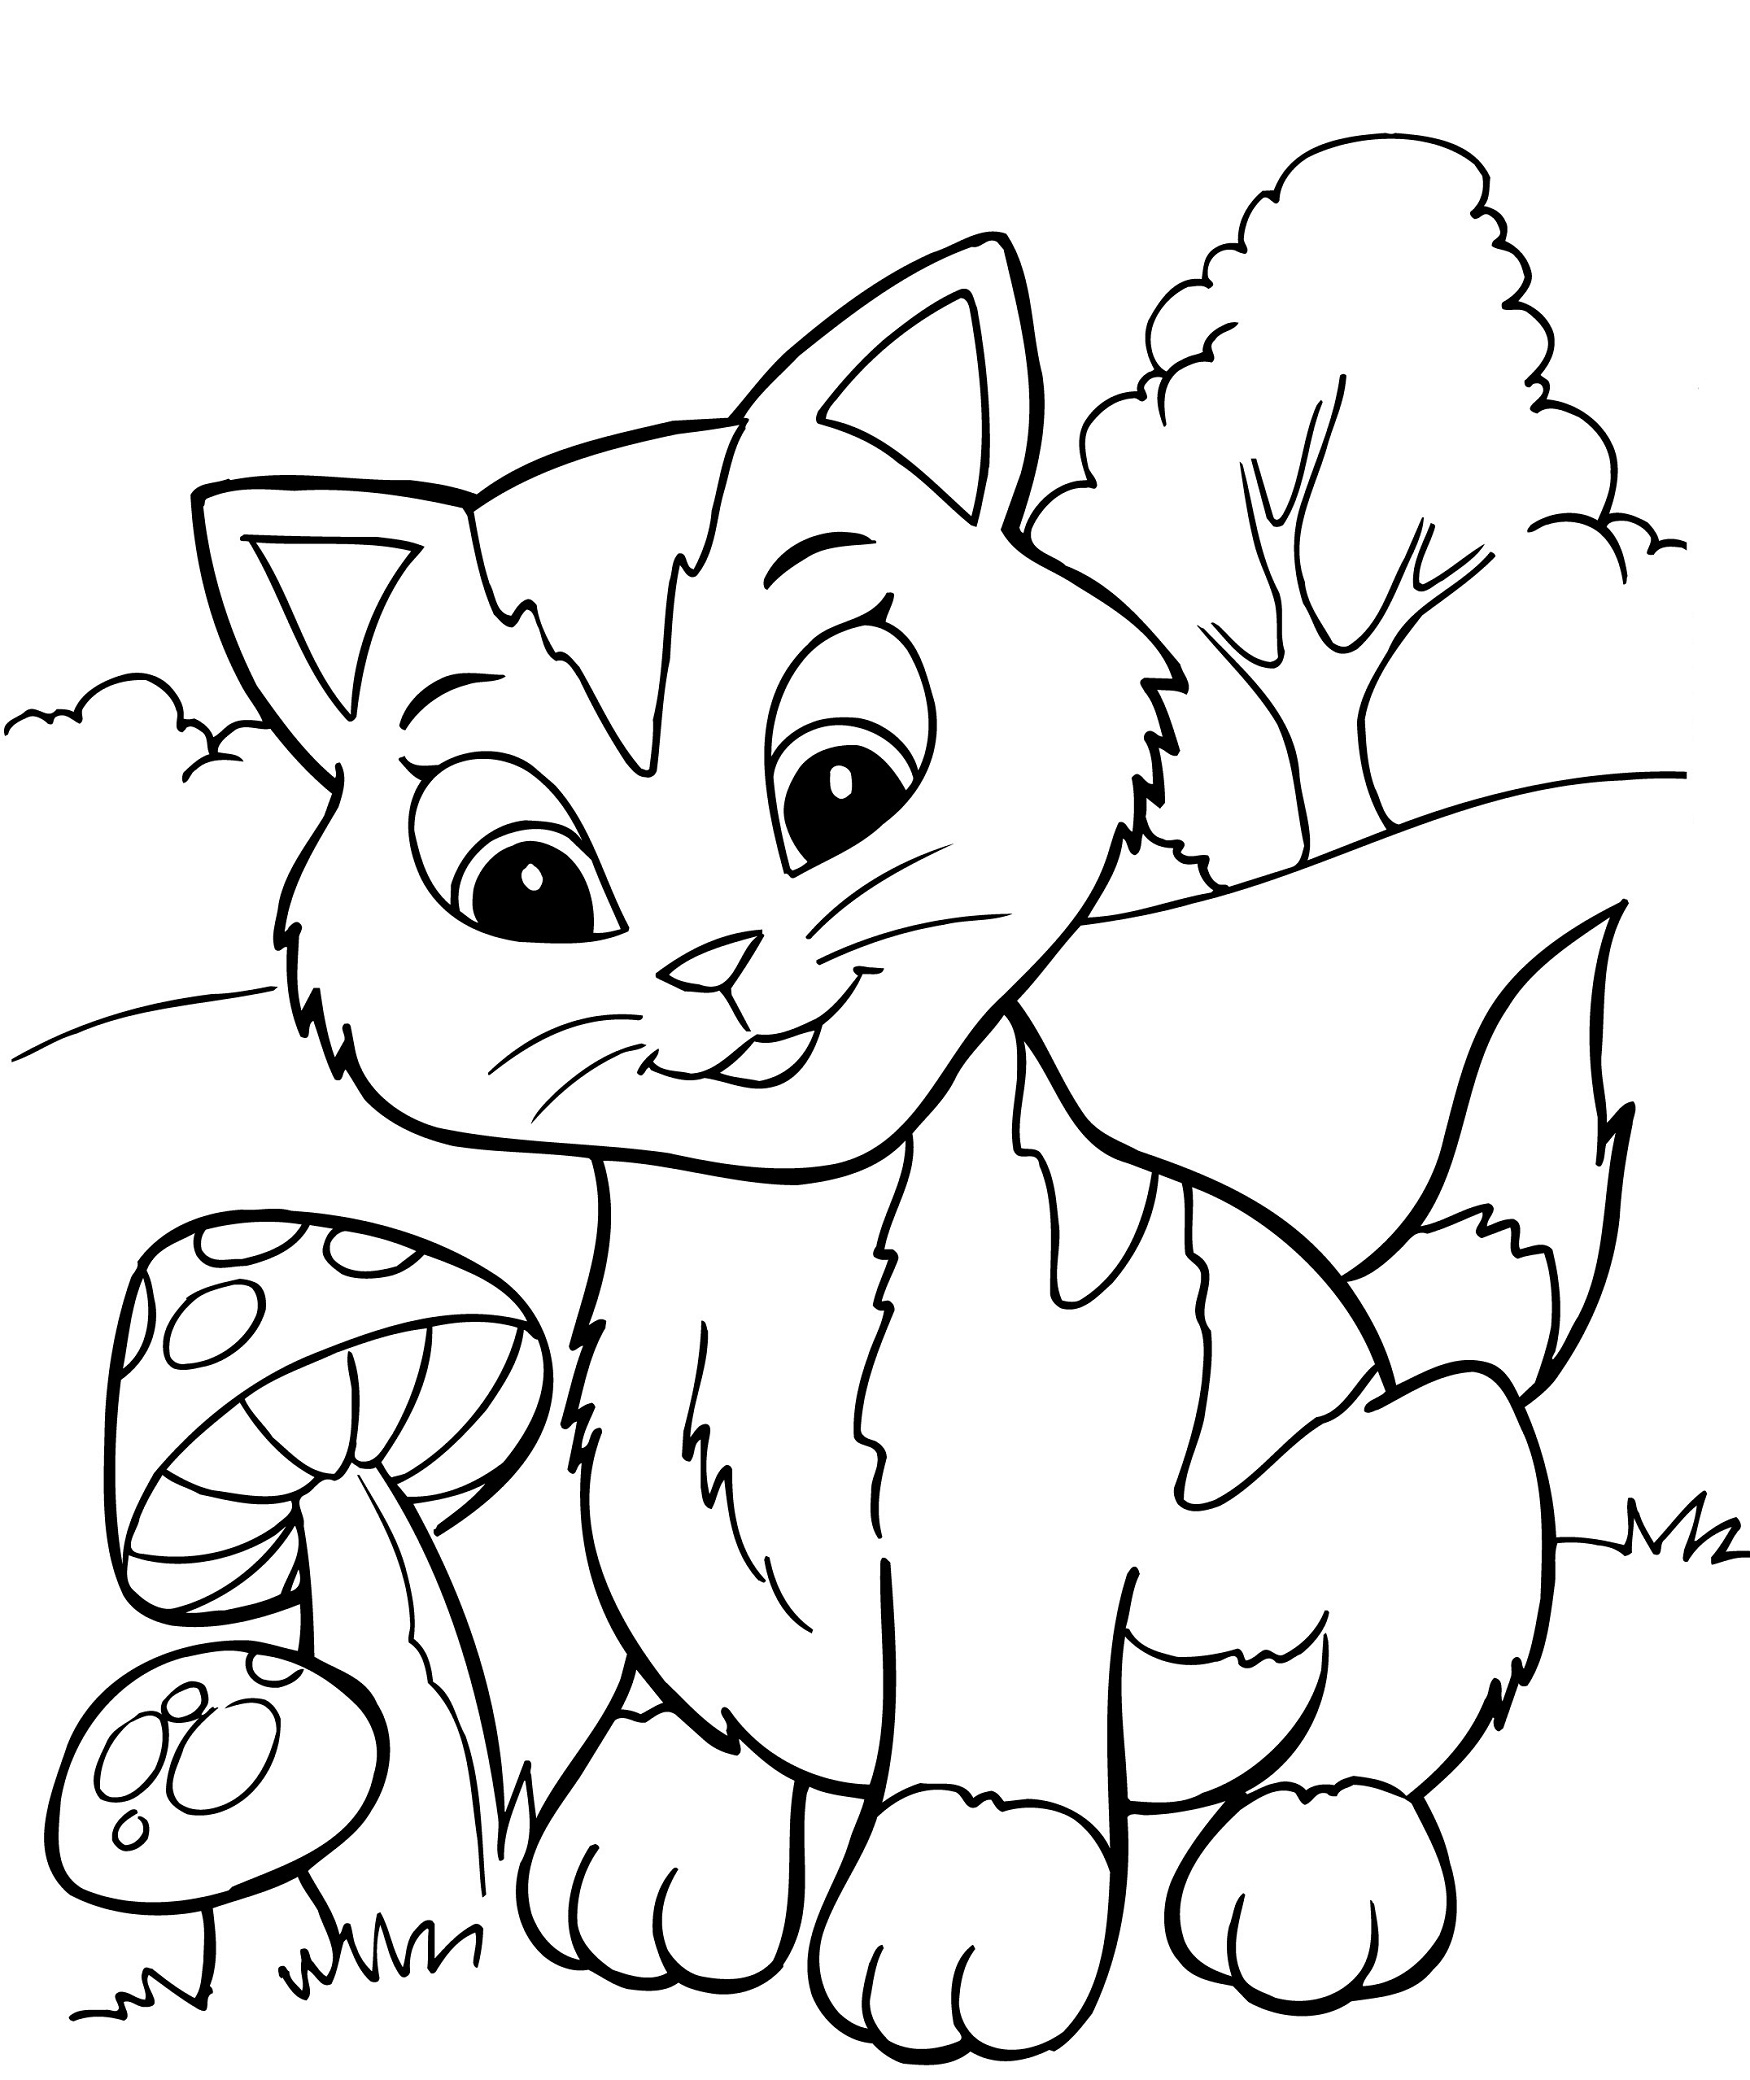 kitten printable kitten coloring pages best coloring pages for kids kitten printable 1 1